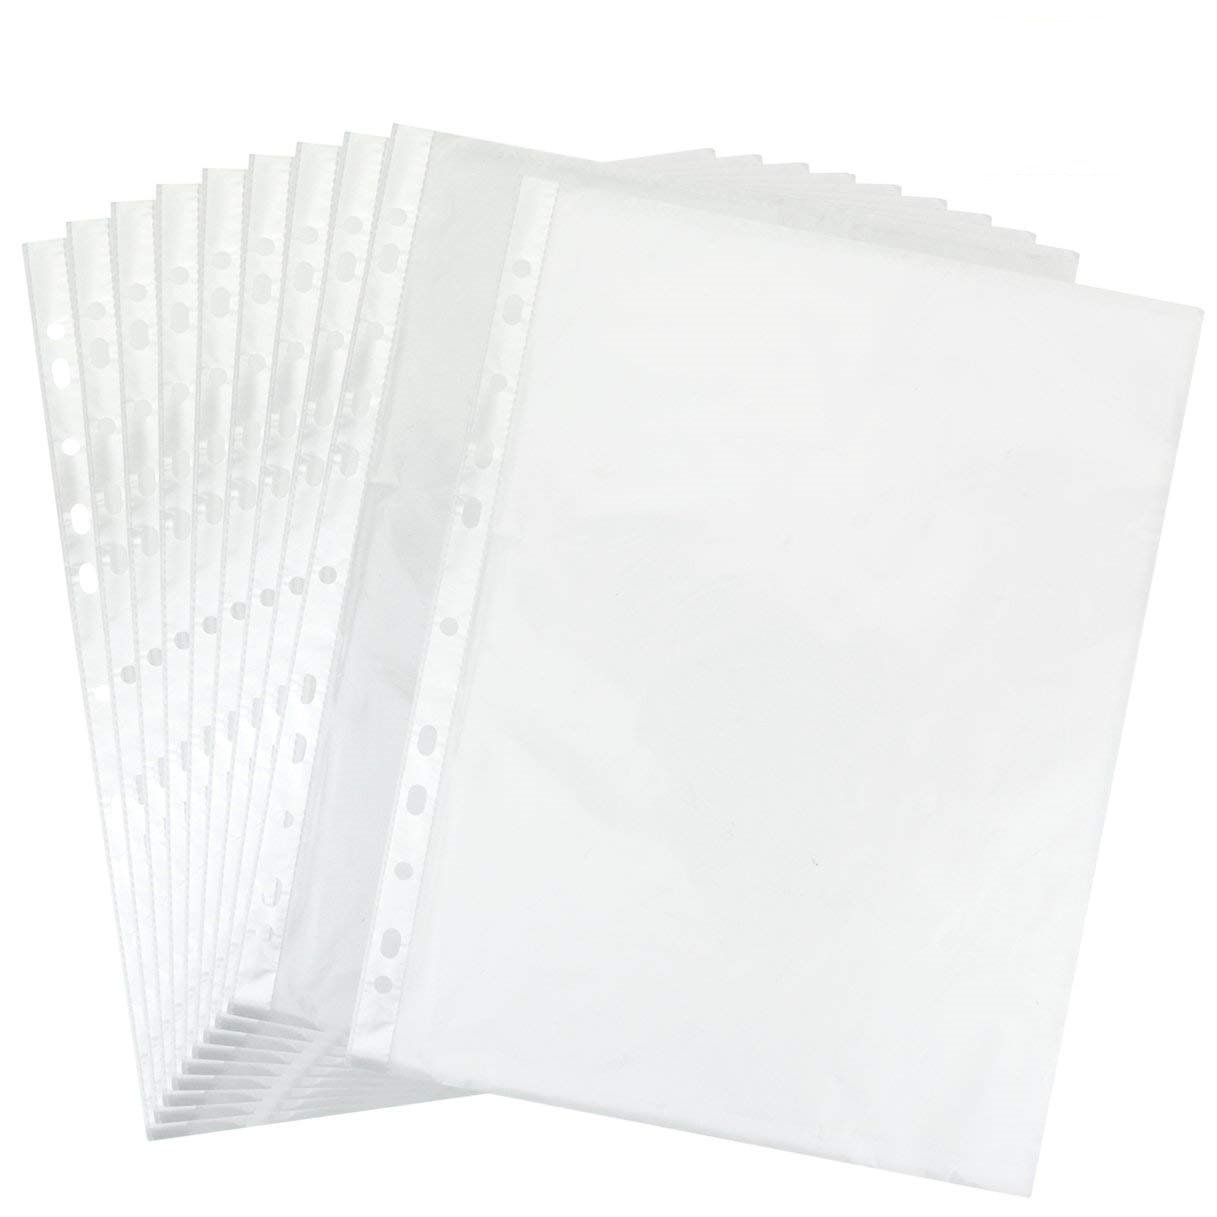 cnomg 11 Hole Clear Sheet Protectors, Office Buff Paper File Folders 8.3'' x 11.7'' Non Vinyl Acid Free Suppliers Pack of 200 Pcs Erase Durable Plastic Dividers